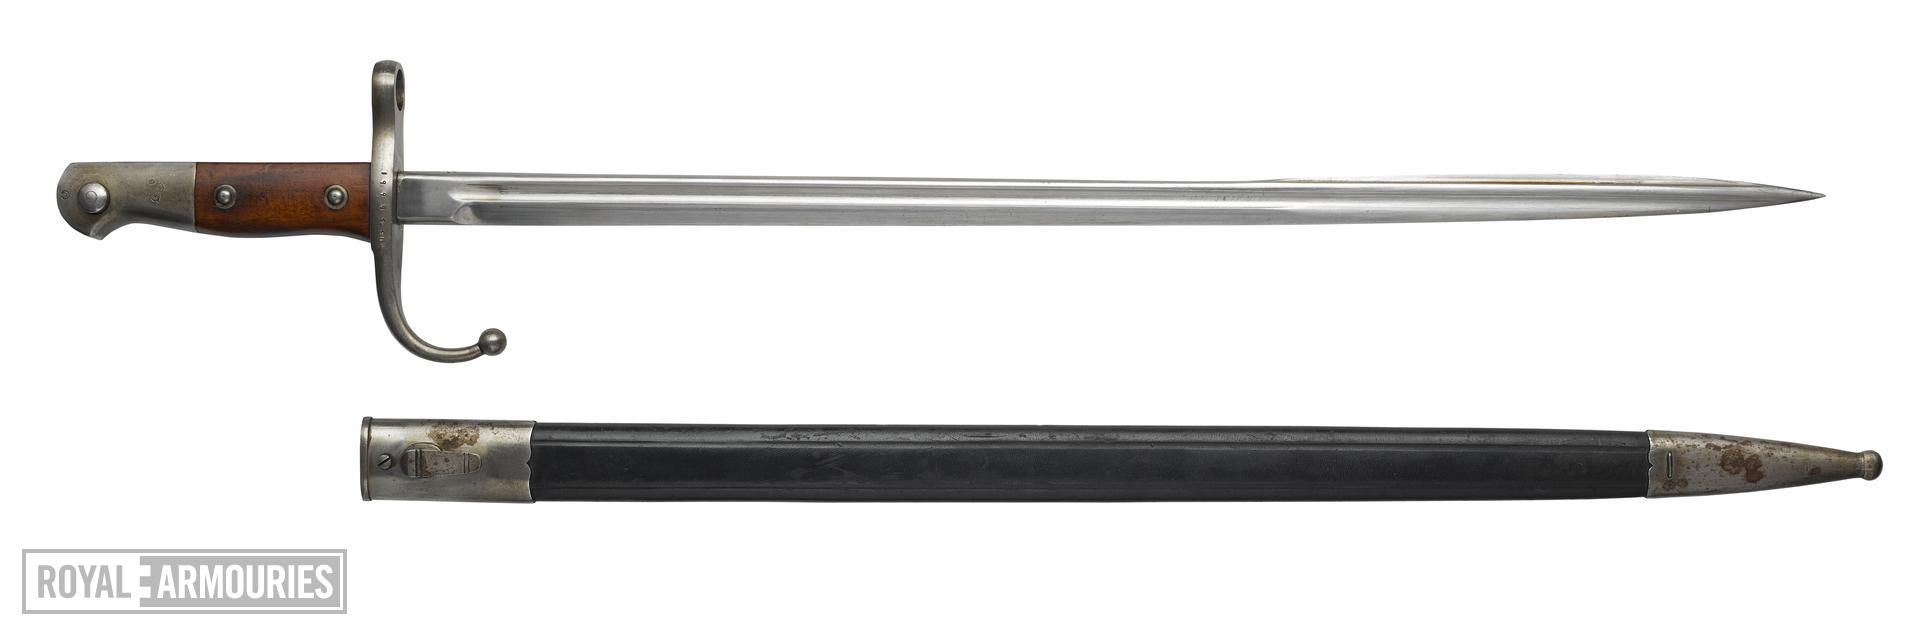 Bayonet and scabbard for Mauser Model 1903 rifle, Turkish, about 1903.